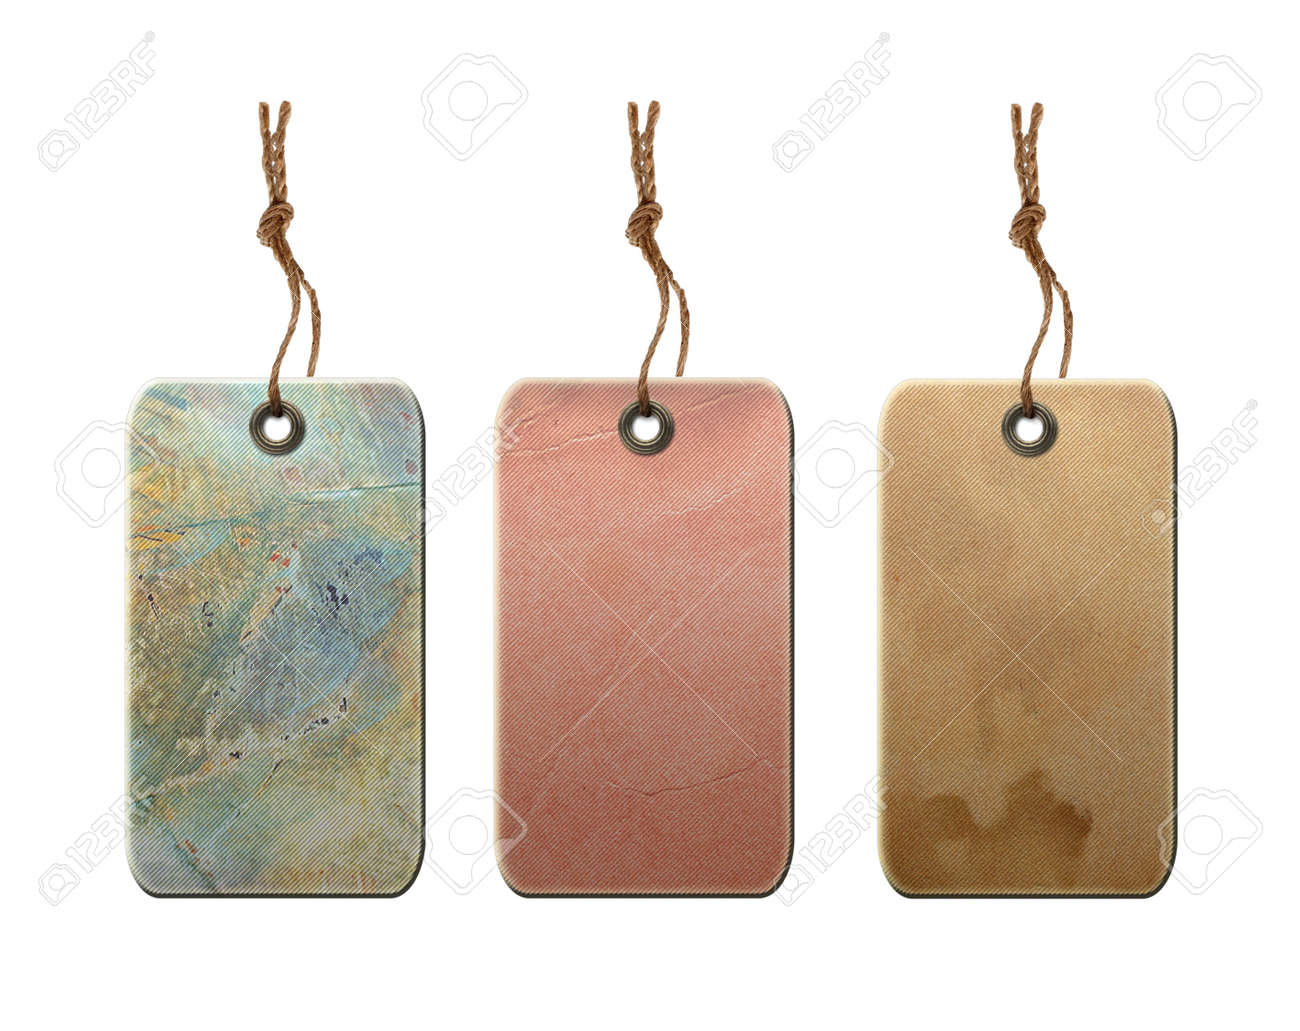 Vintage Blank Gift Tags With String Isolated On White Background